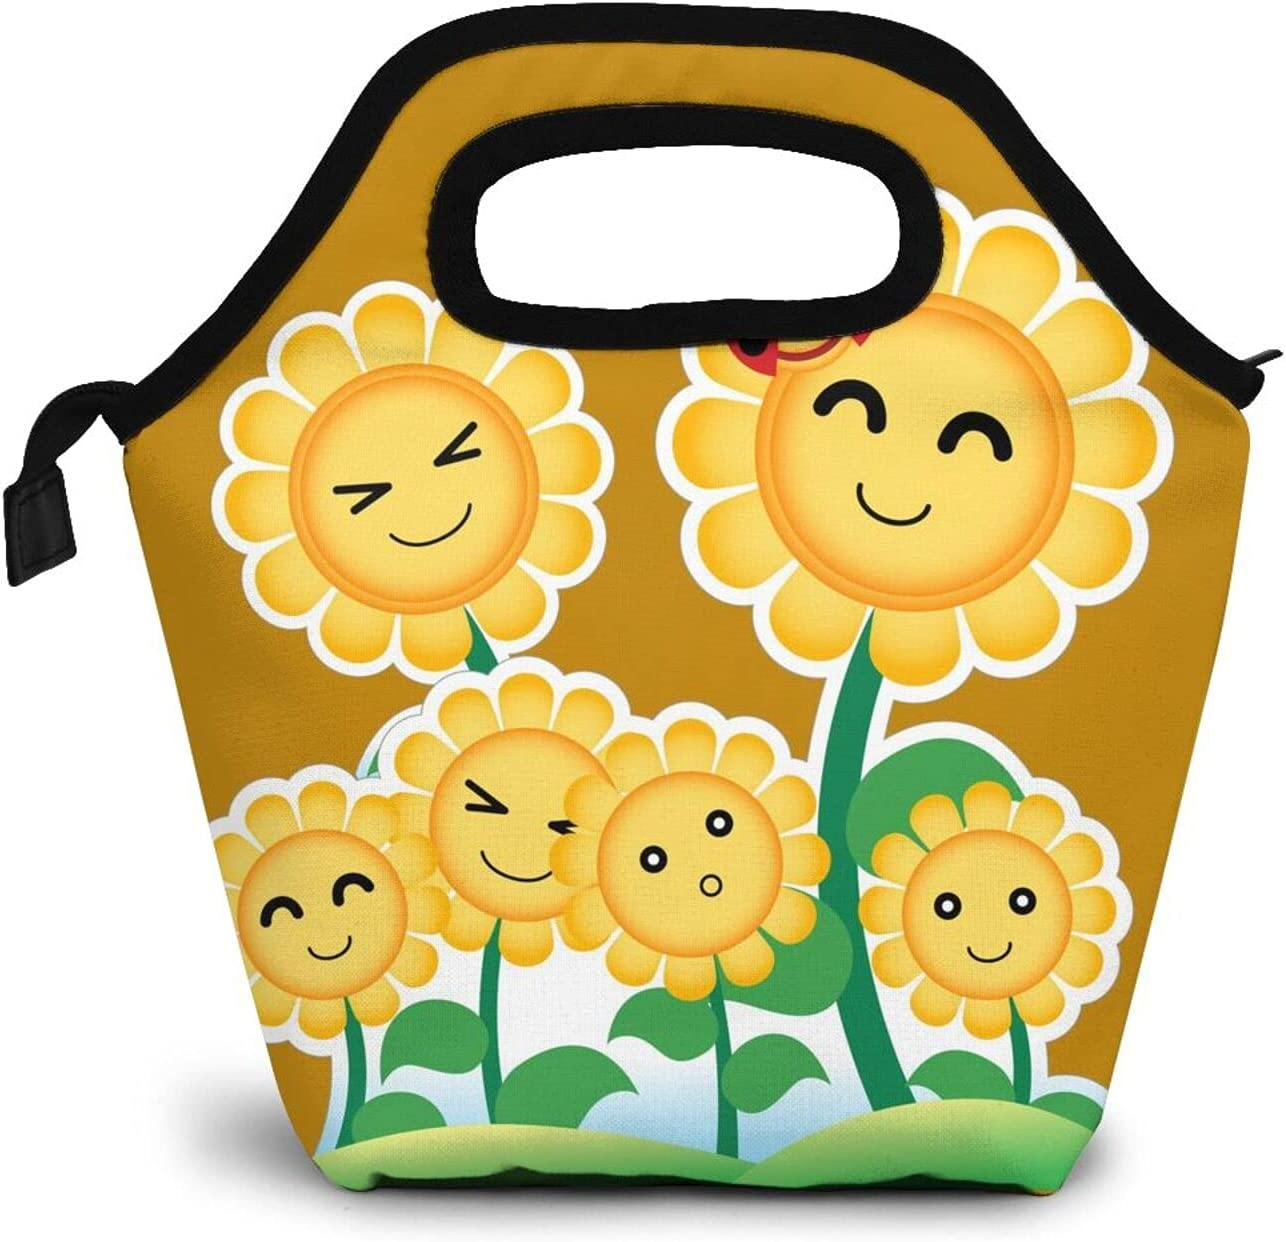 Smiling Cartoon Sunflower Lunch Box Insulated Durable Meal Bag Yellow Flowers Reusable Waterproof Snack Bag Portable Food Container Tote Bags For College Work Picnic Hiking Beach Fishing